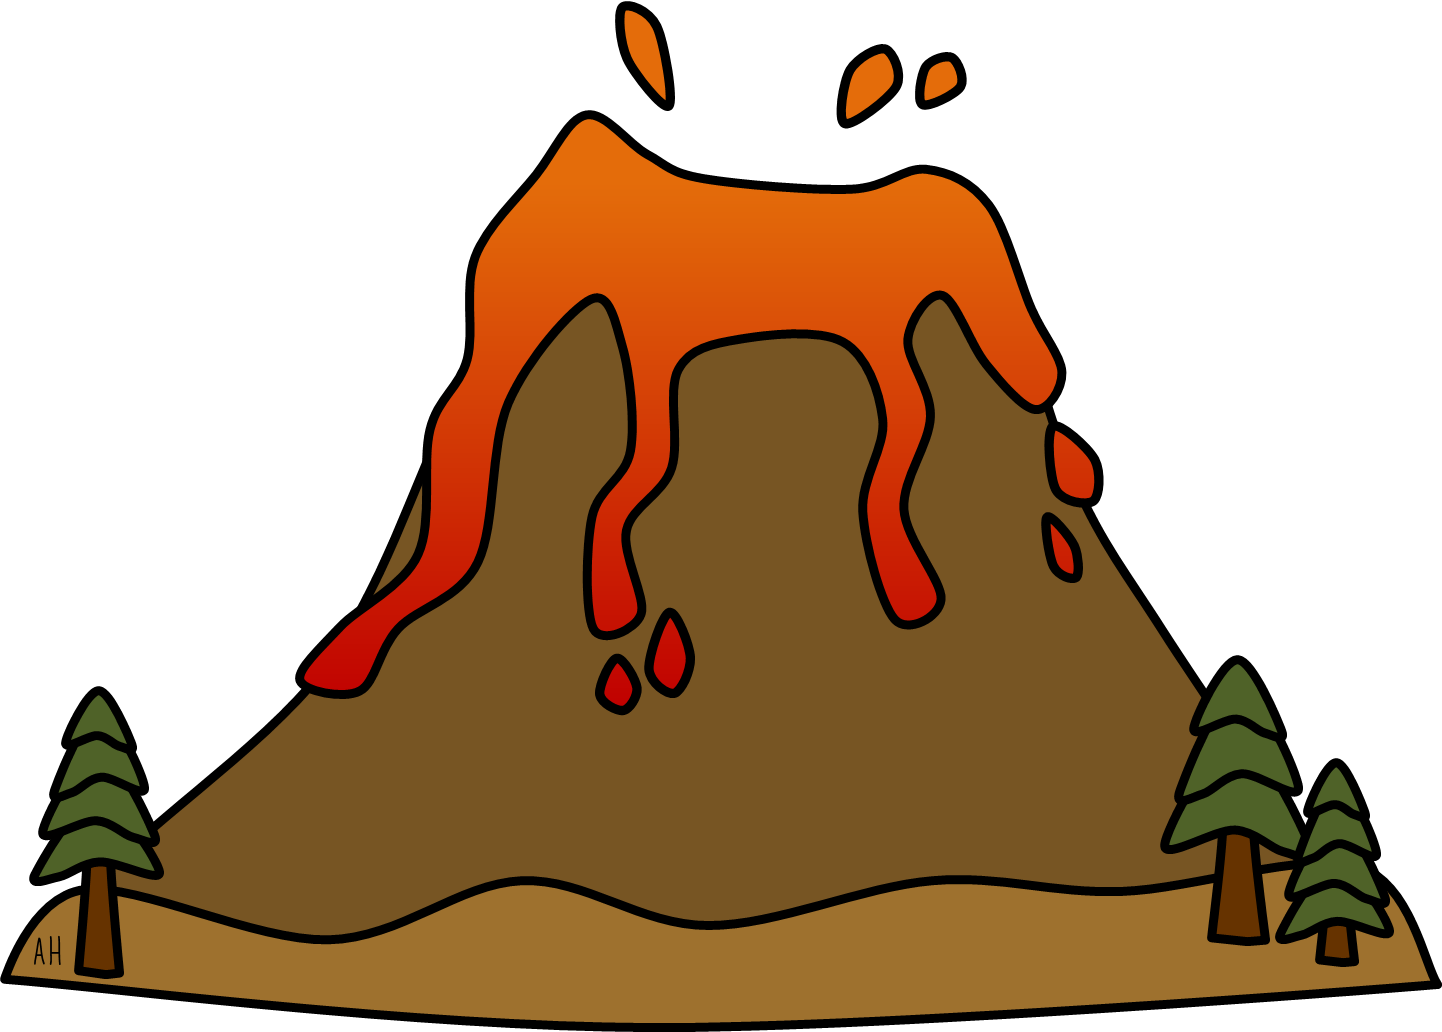 transparent volcano ks2